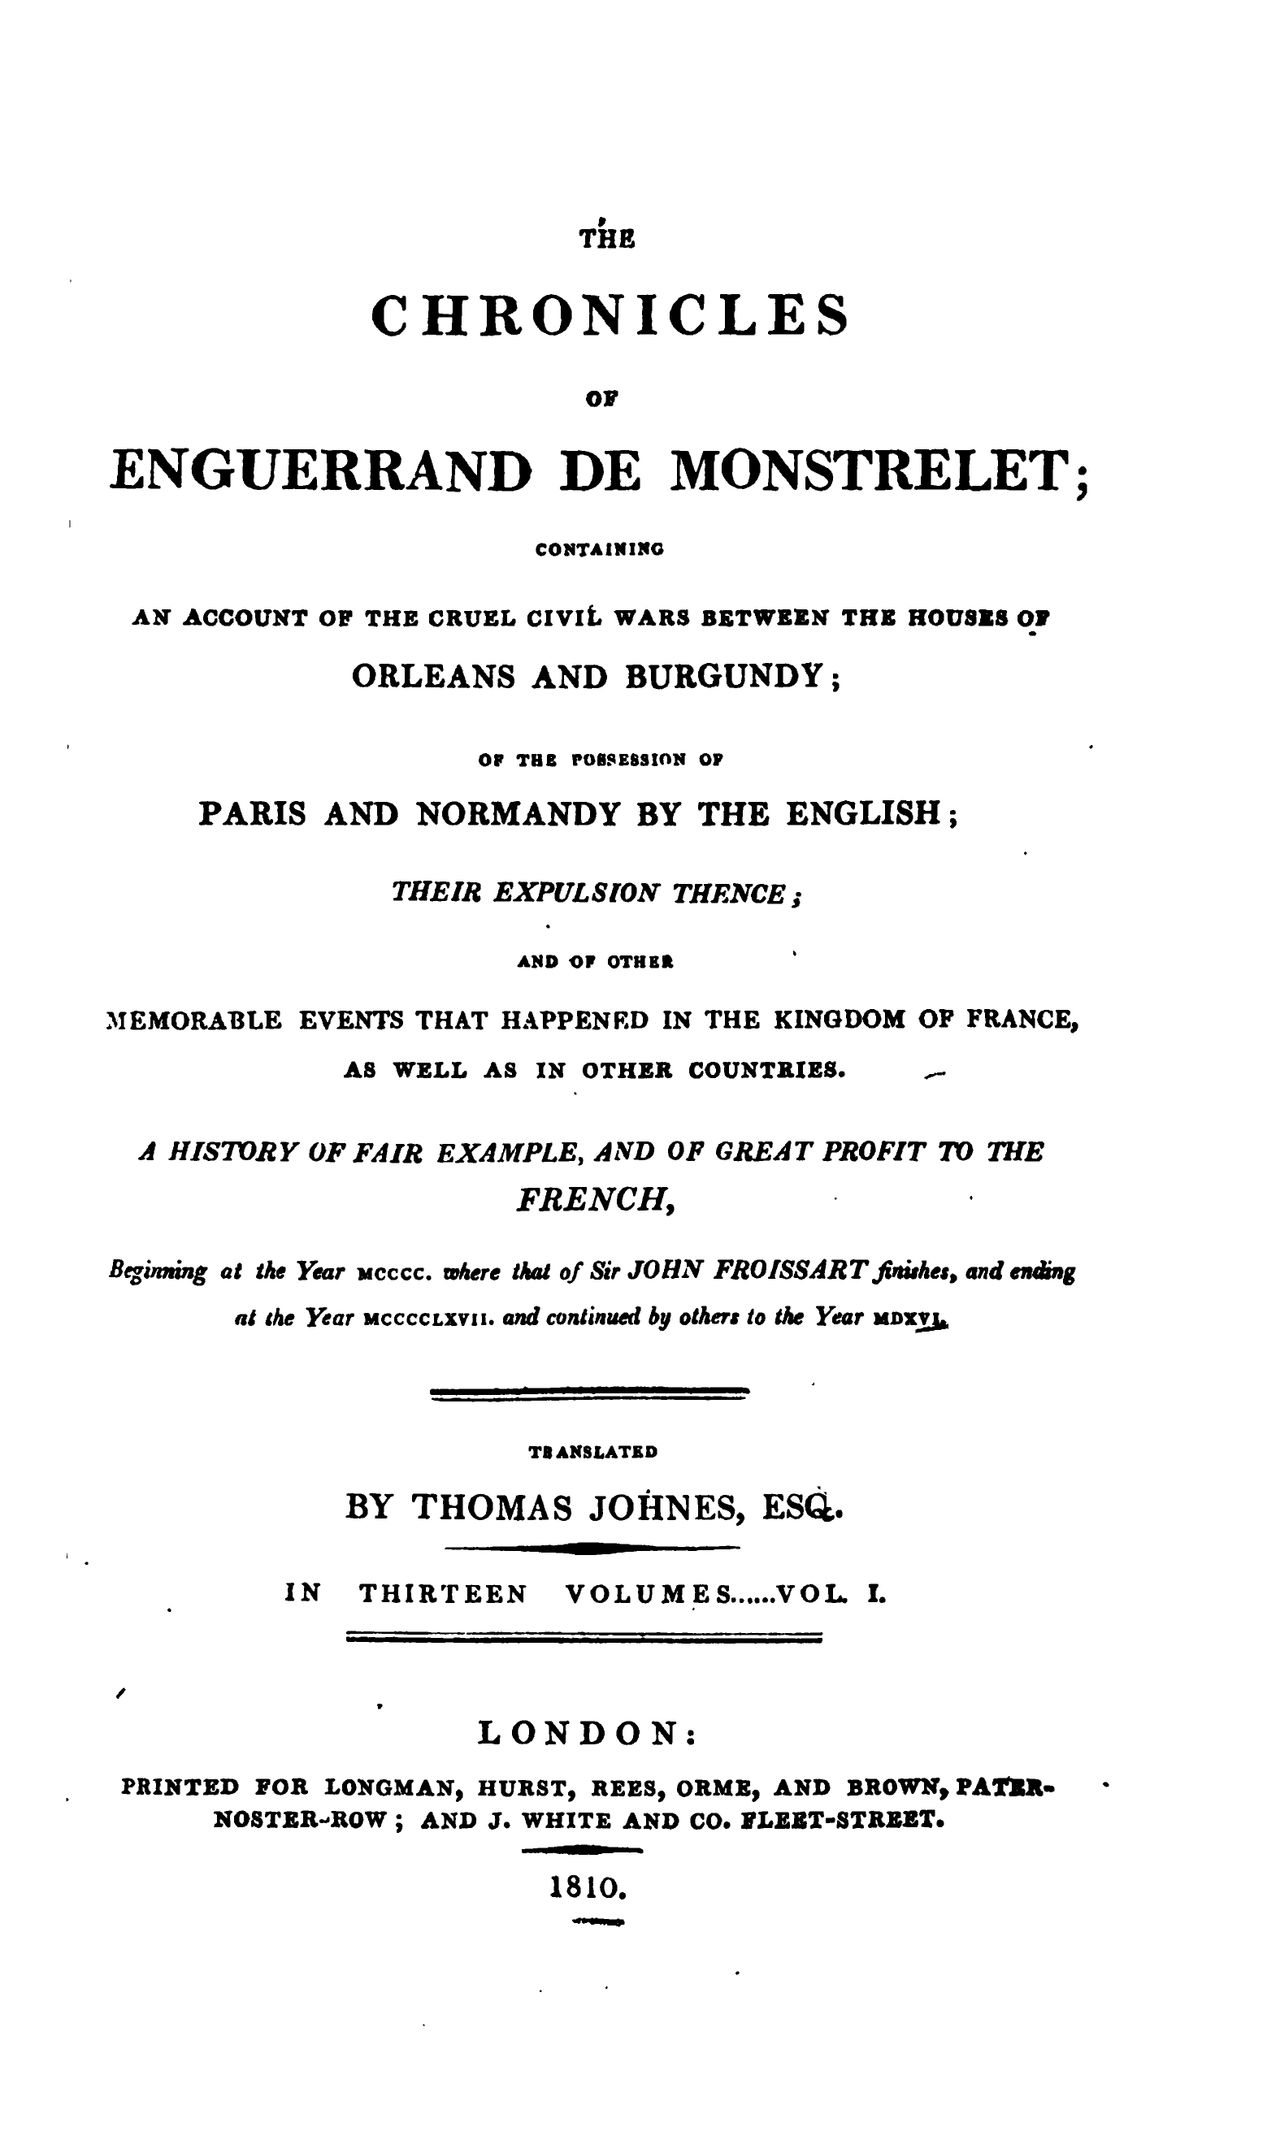 Enguerrand de Monstrelet chronicle vol.1